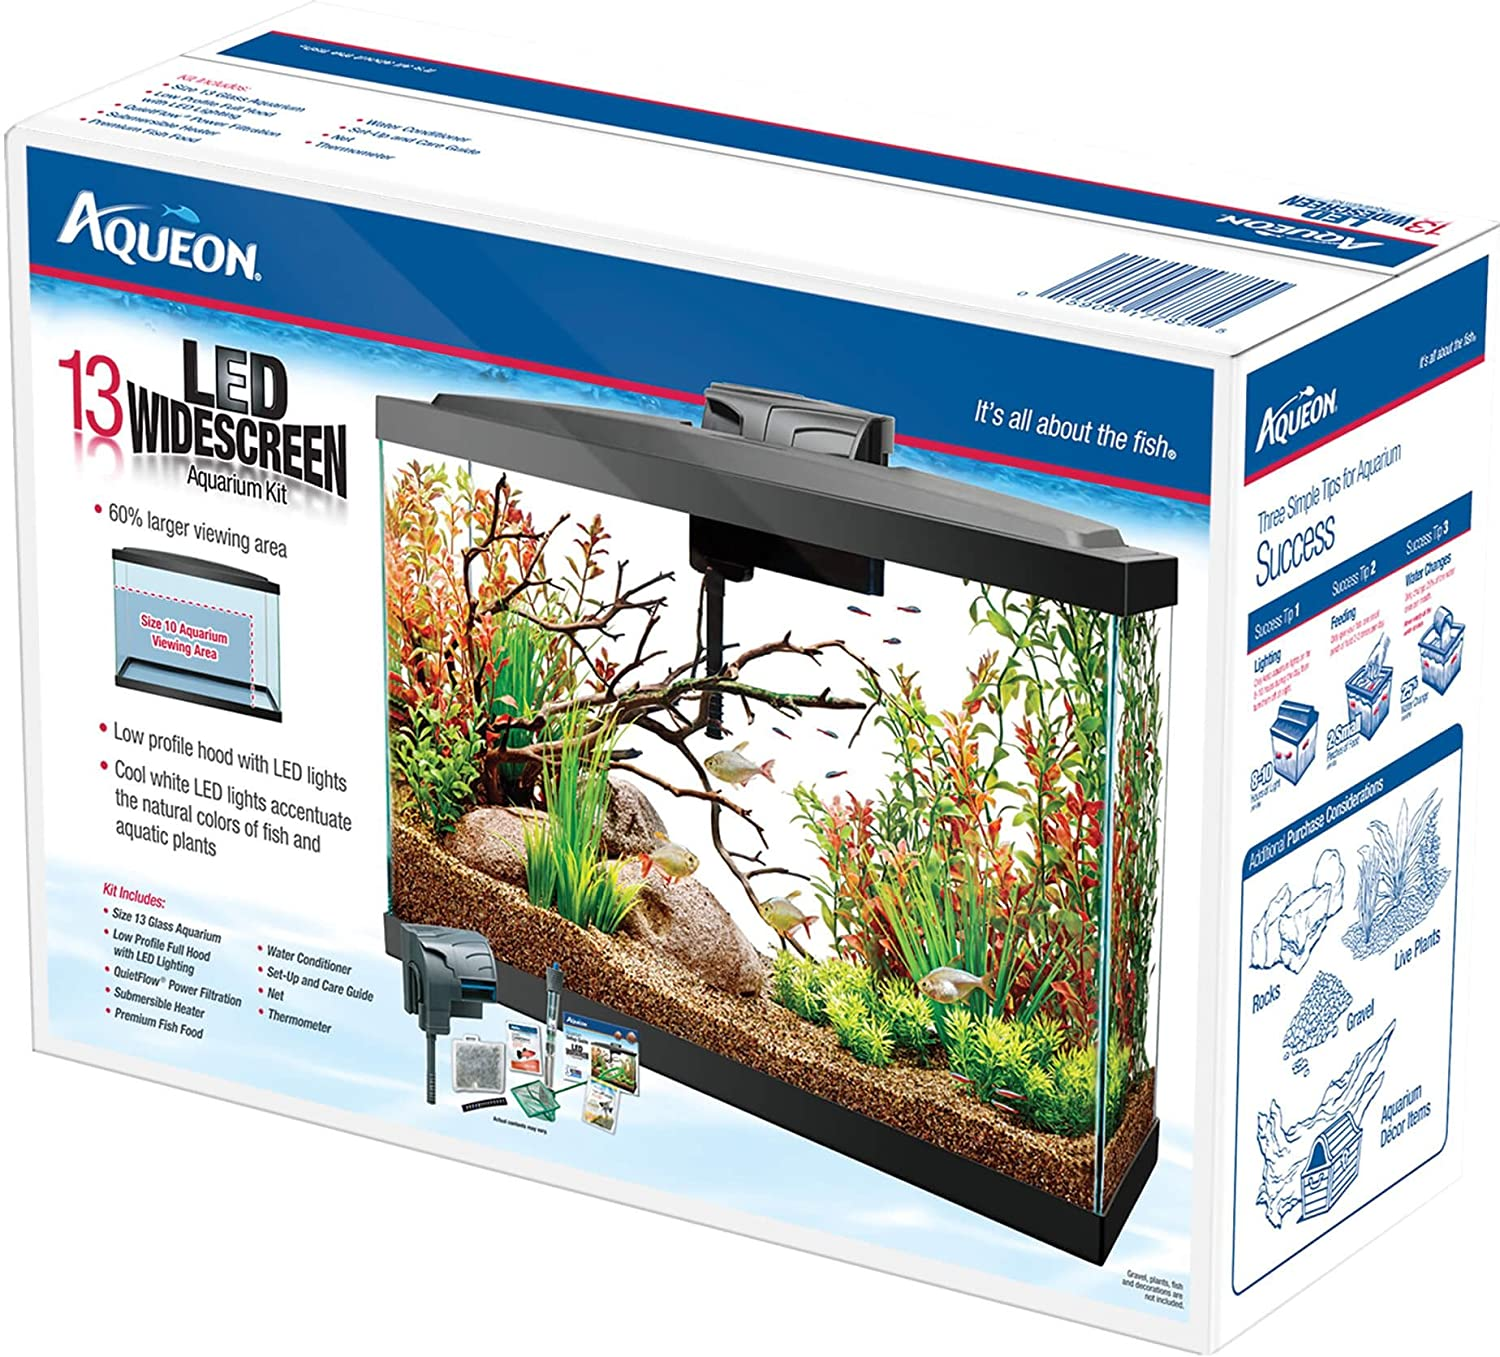 Amazon Aqueon 13 LED Widescreen Aquarium Kit Pet Supplies